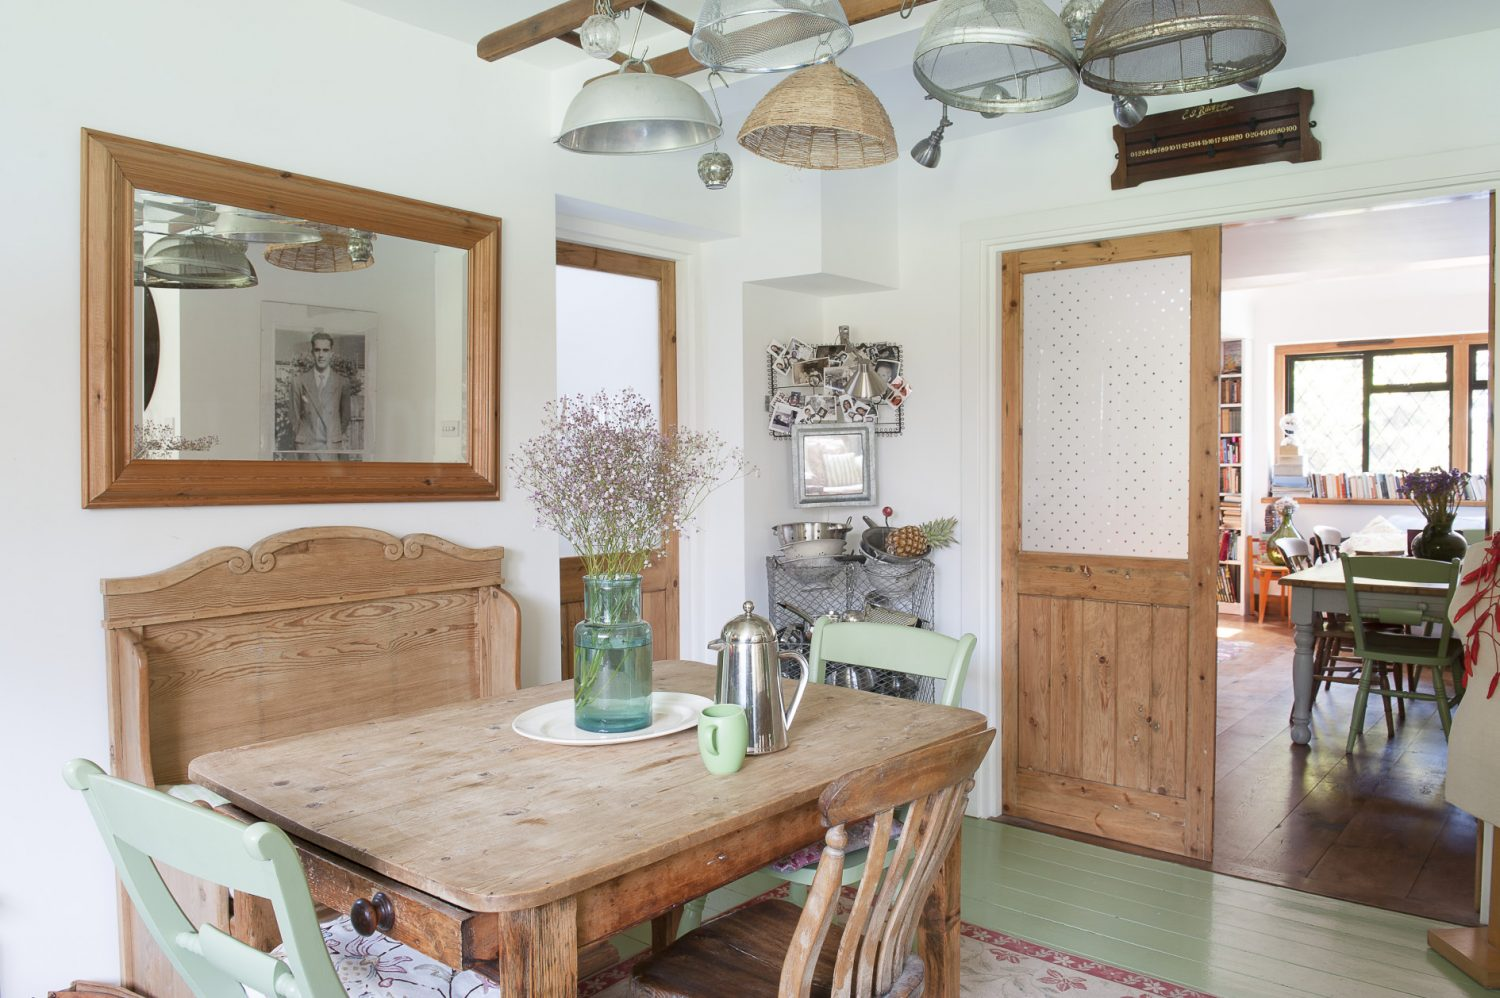 Etched glass doors lead off from the kitchen into the dining room and utility room